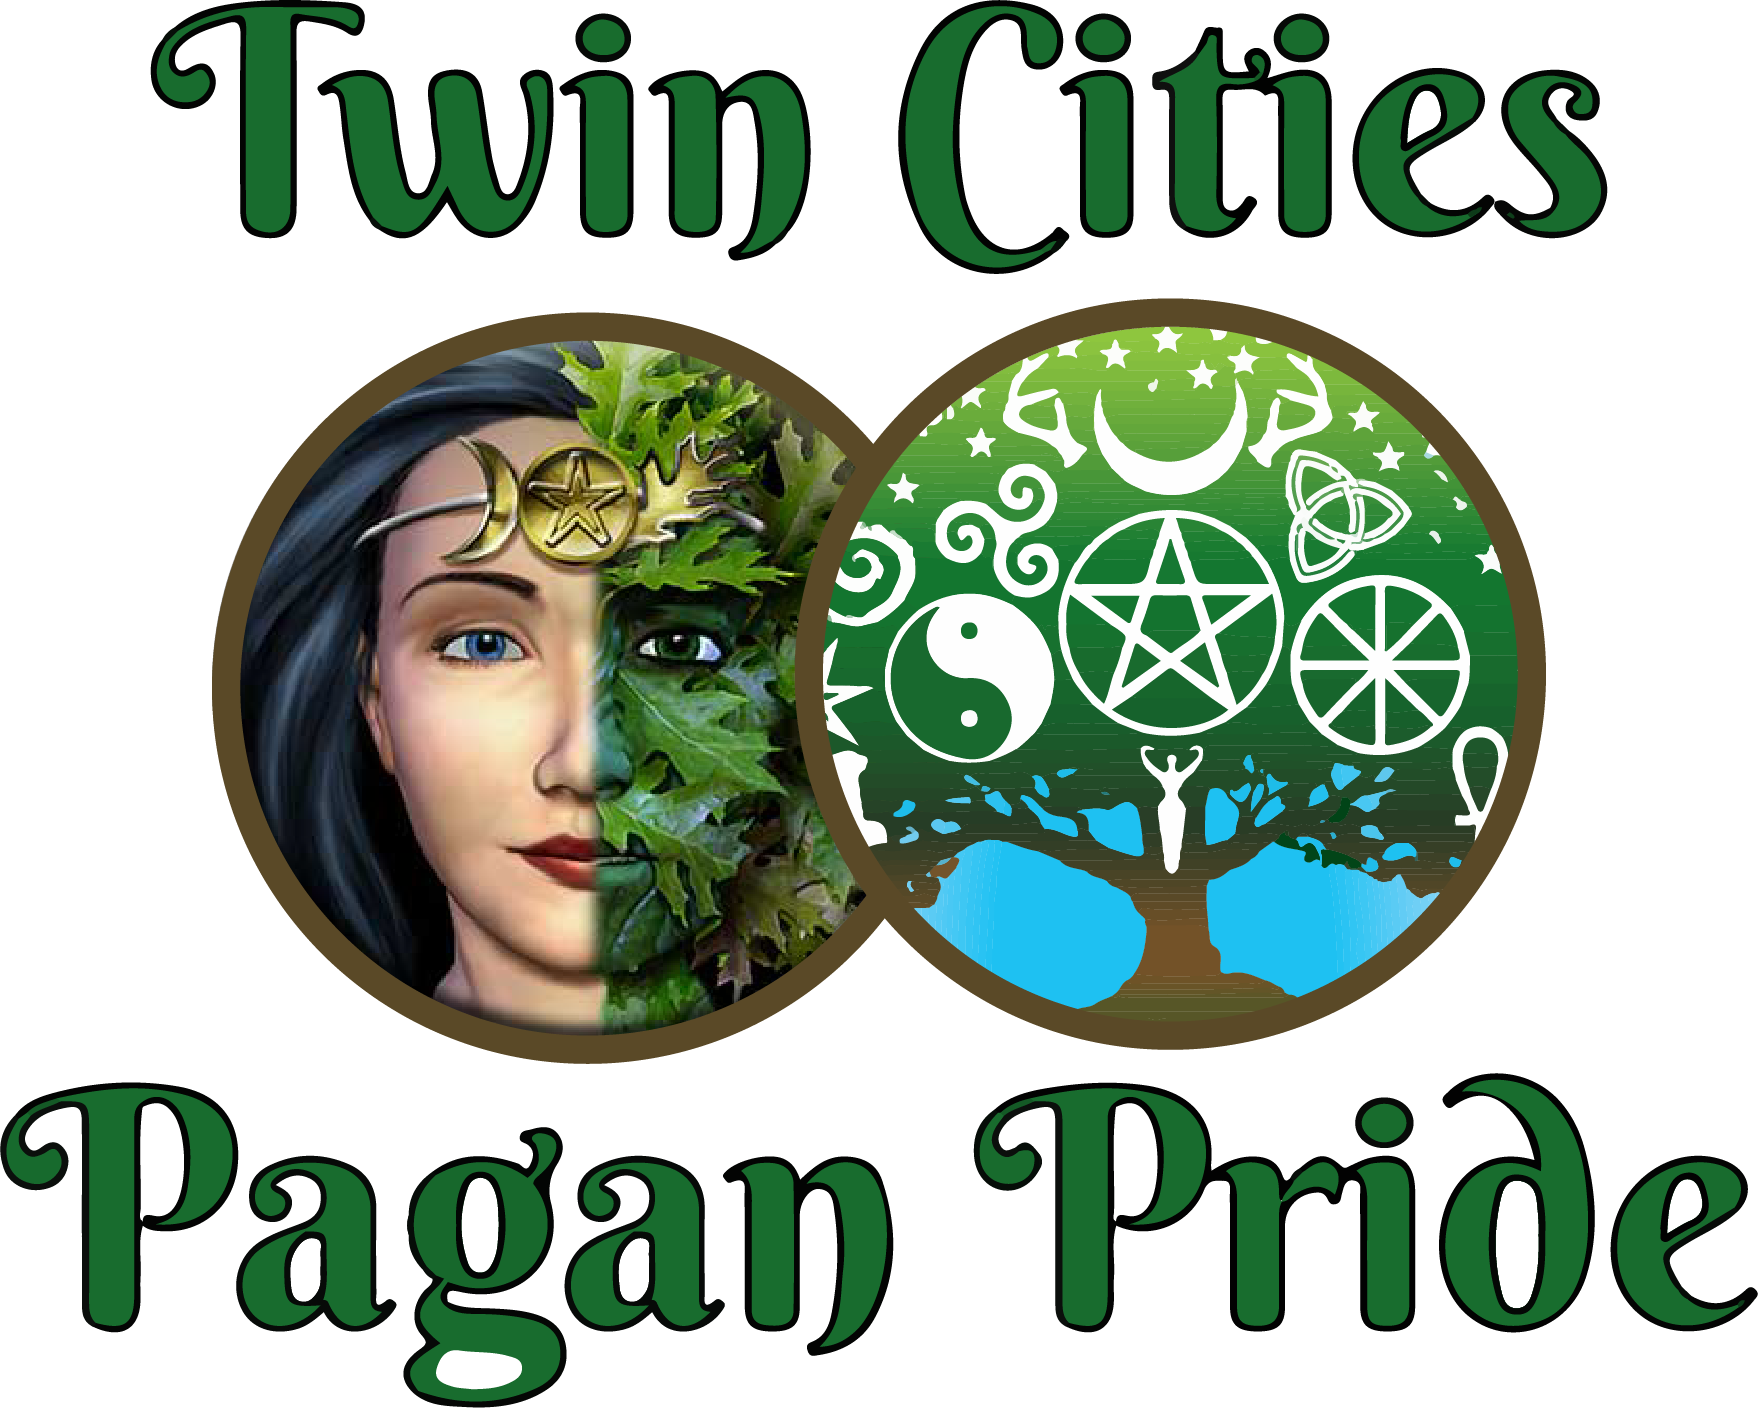 About TC Pagan Pride